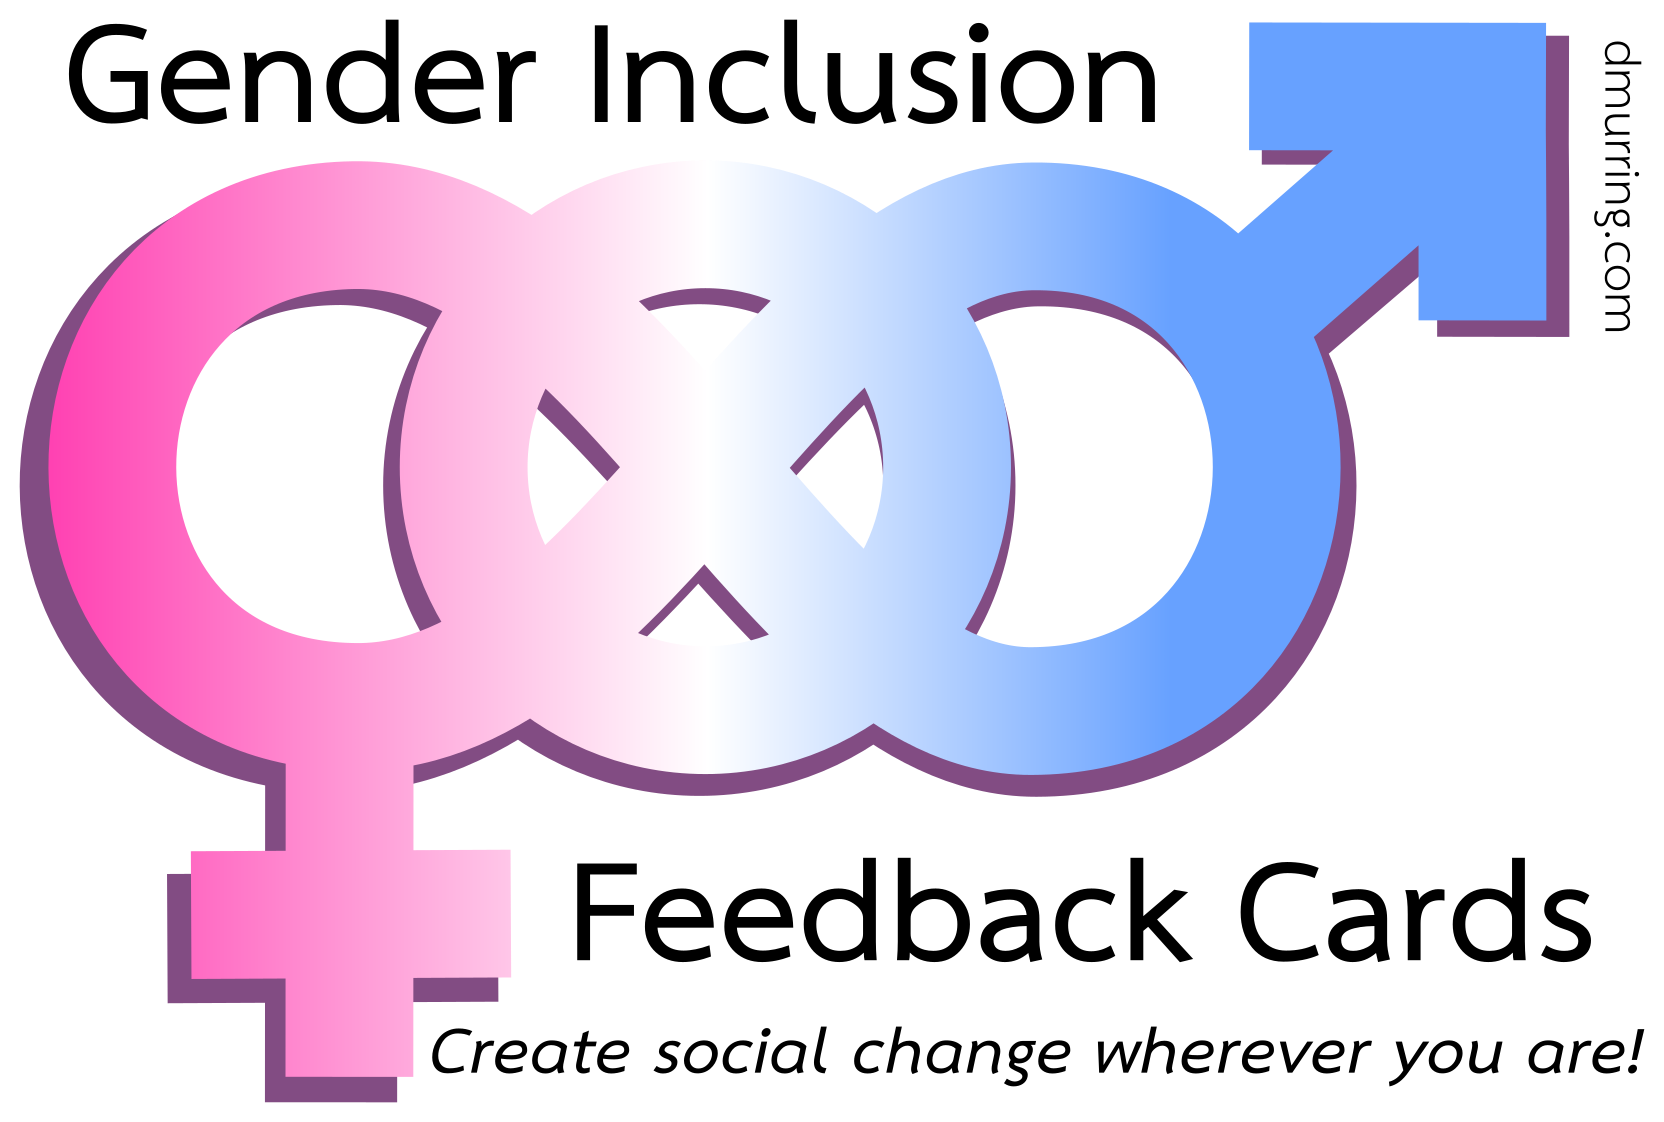 Gender Inclusion Feedback Cards logo: a symbol combining the standard male and female symbols to include nonbinary and null gender identities